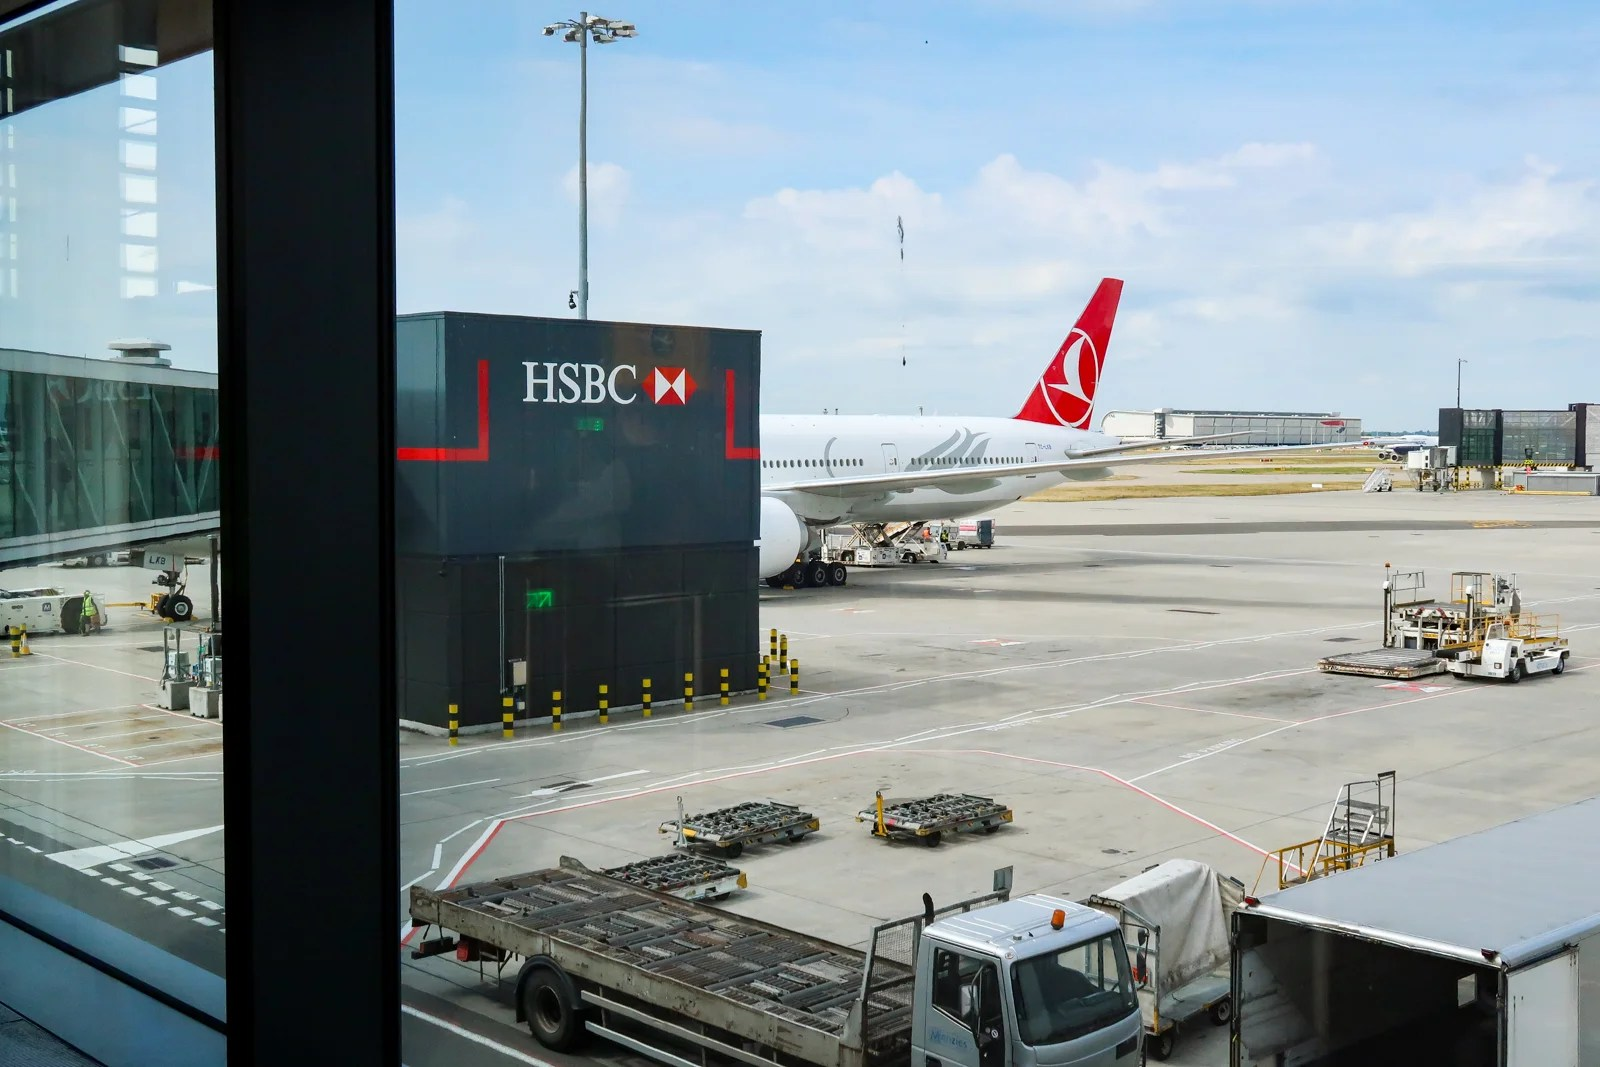 Review: Turkish Airlines Economy on the 777, LHR-IST